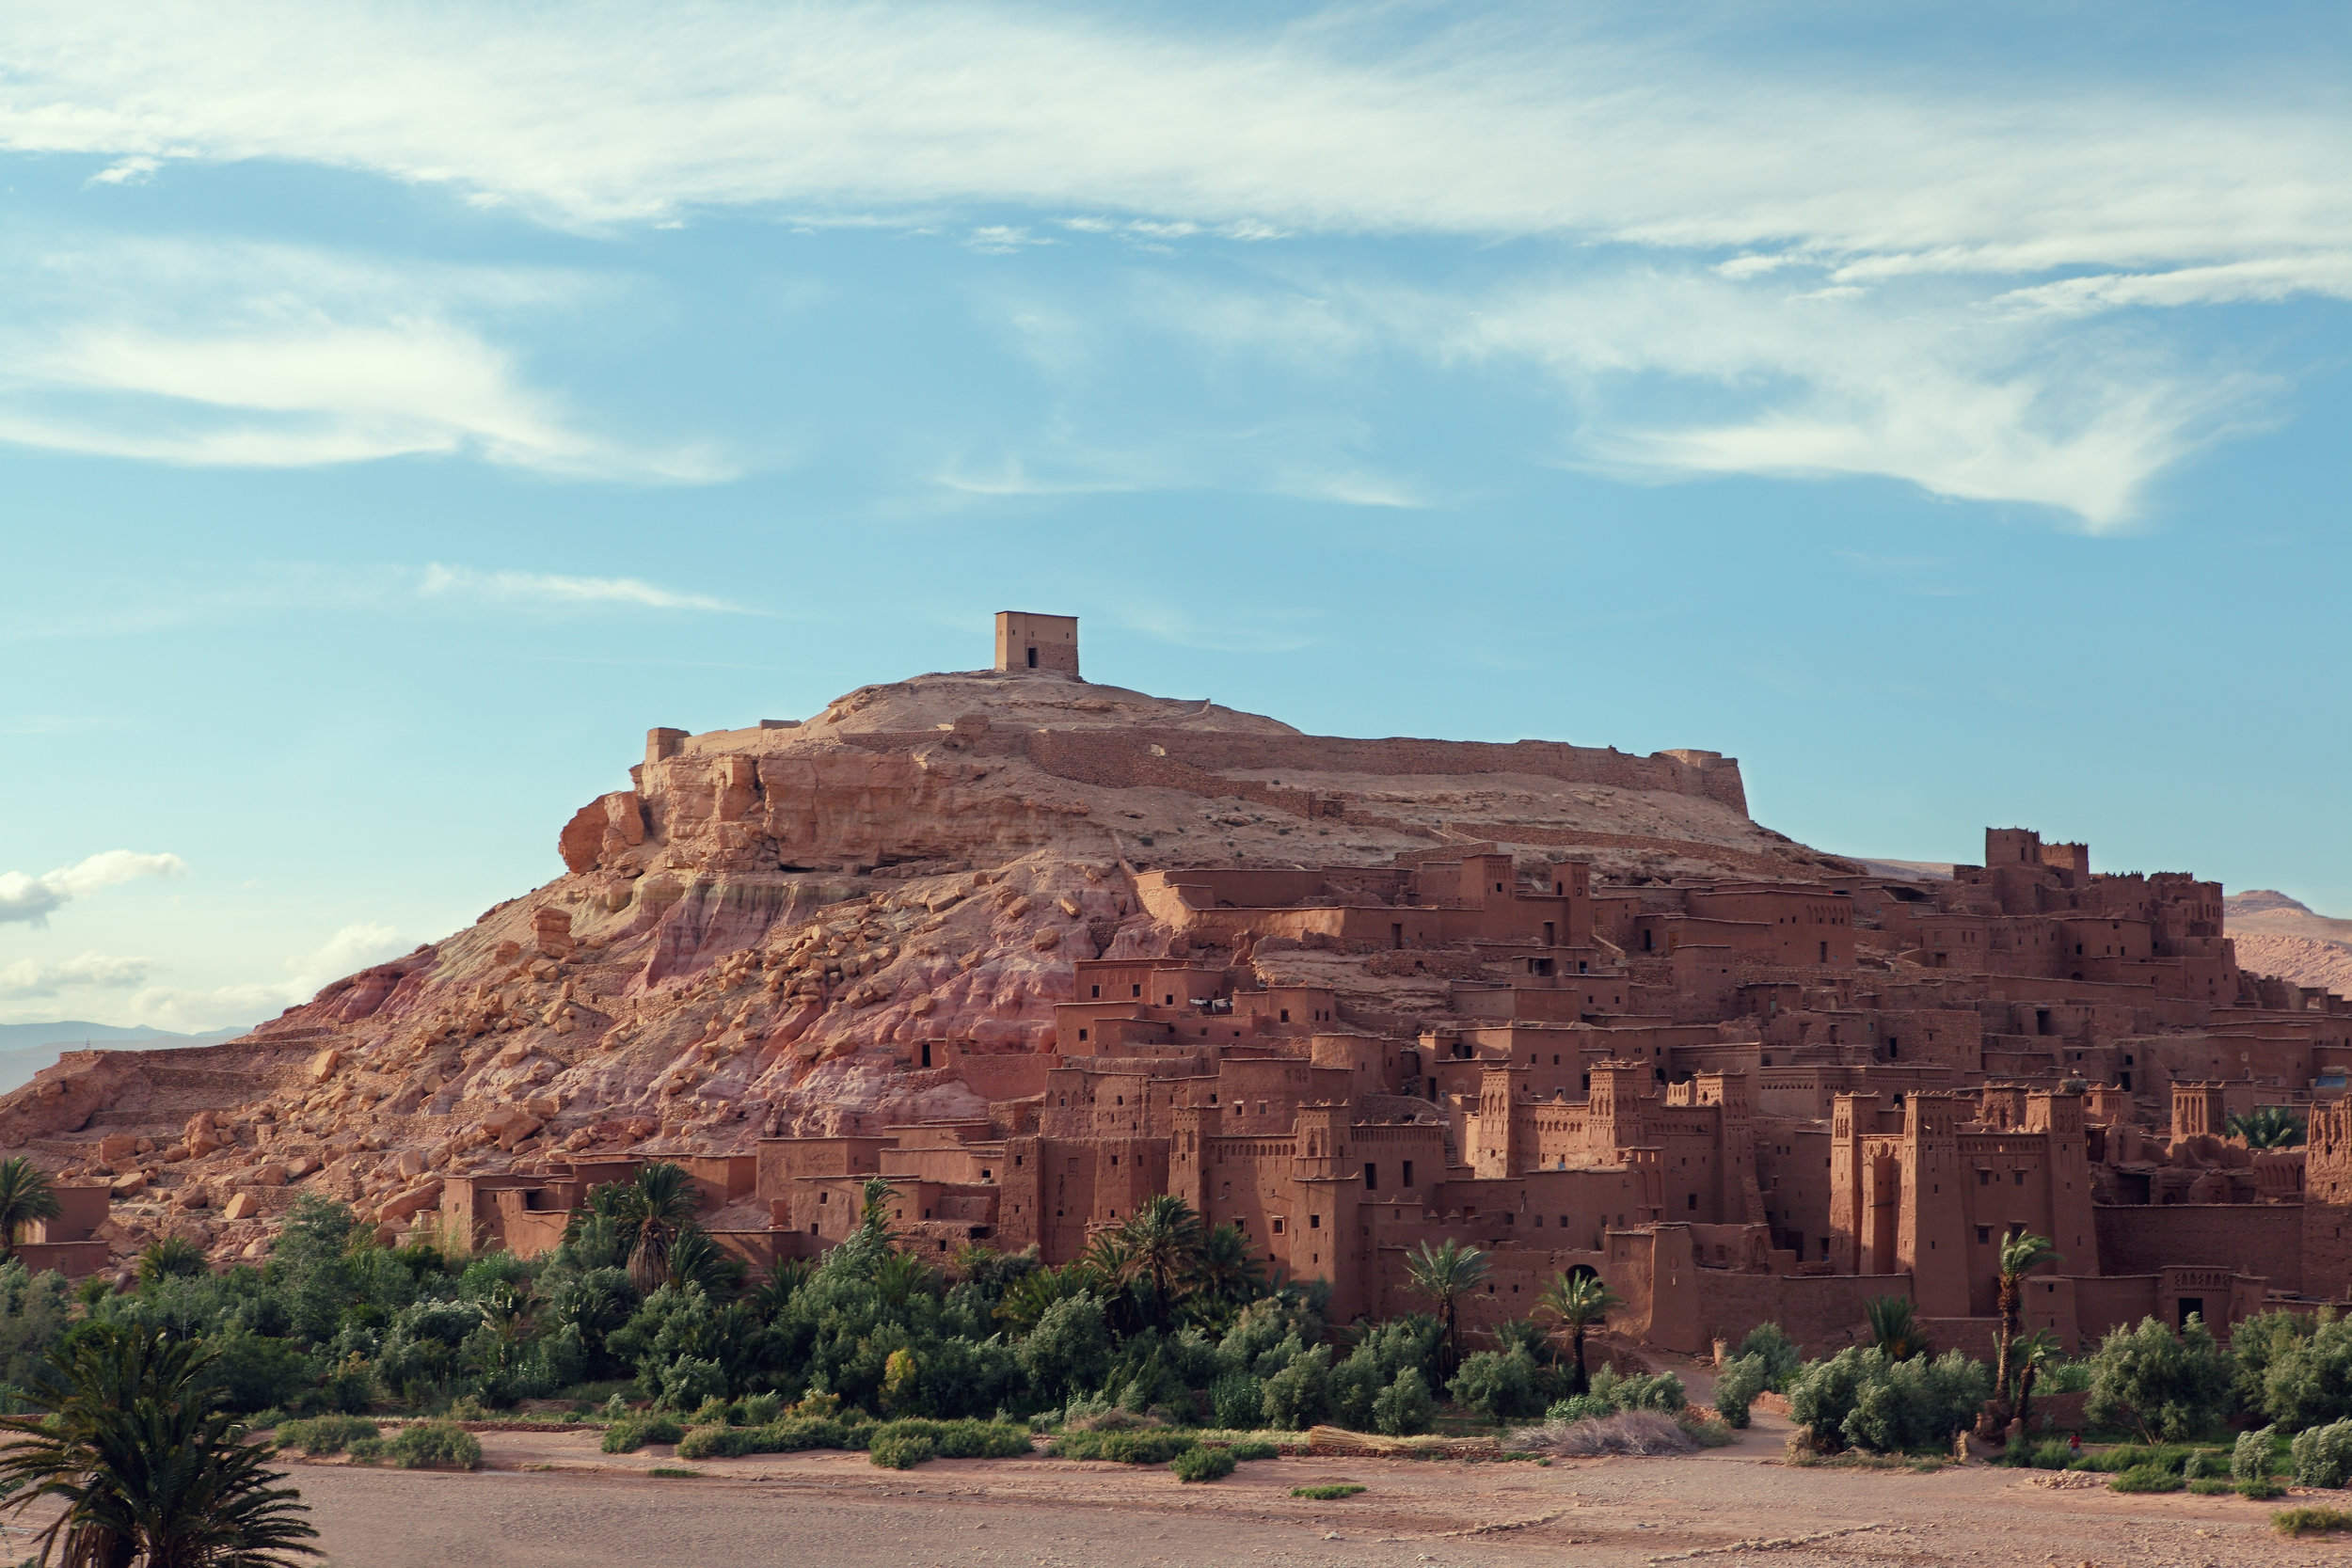 Morocco Ait Ben Haddou Mountains Ruin-Ruth Murphy 2012-IMG7233 Processed Lg RGB.jpg